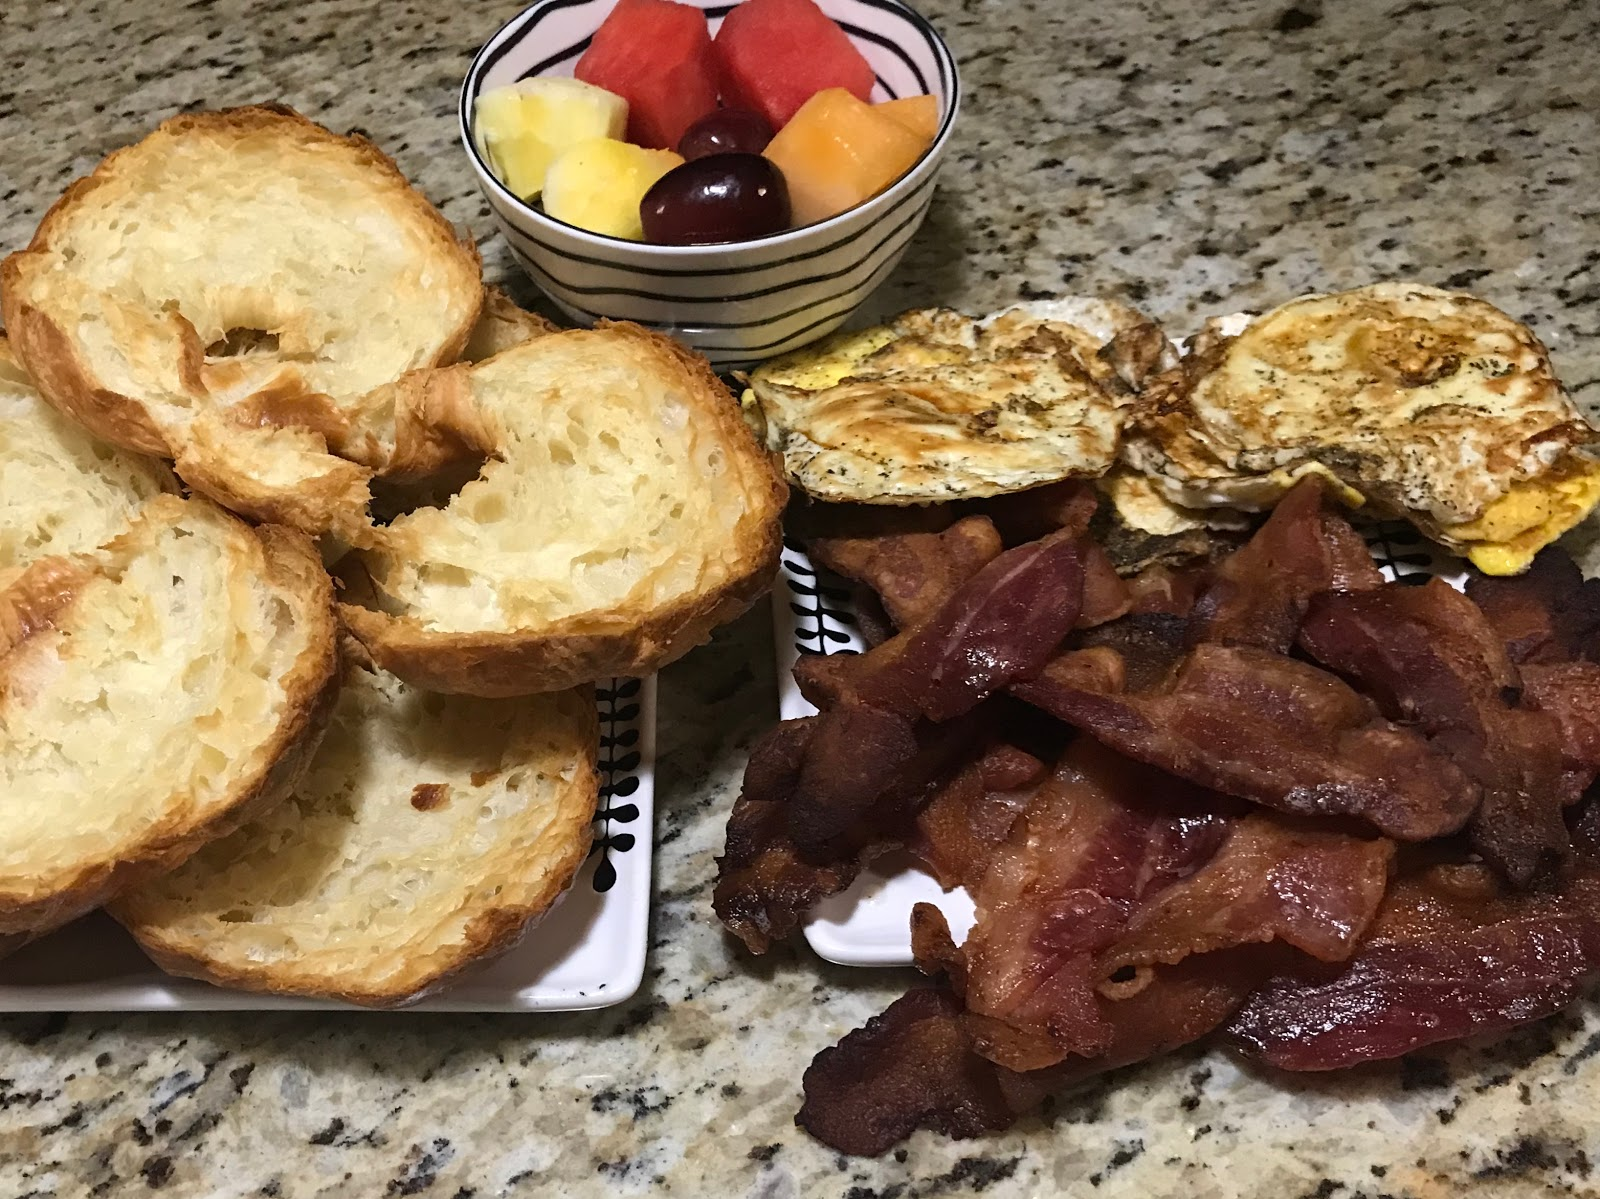 Image: Croissants, bacon, eggs on a plate